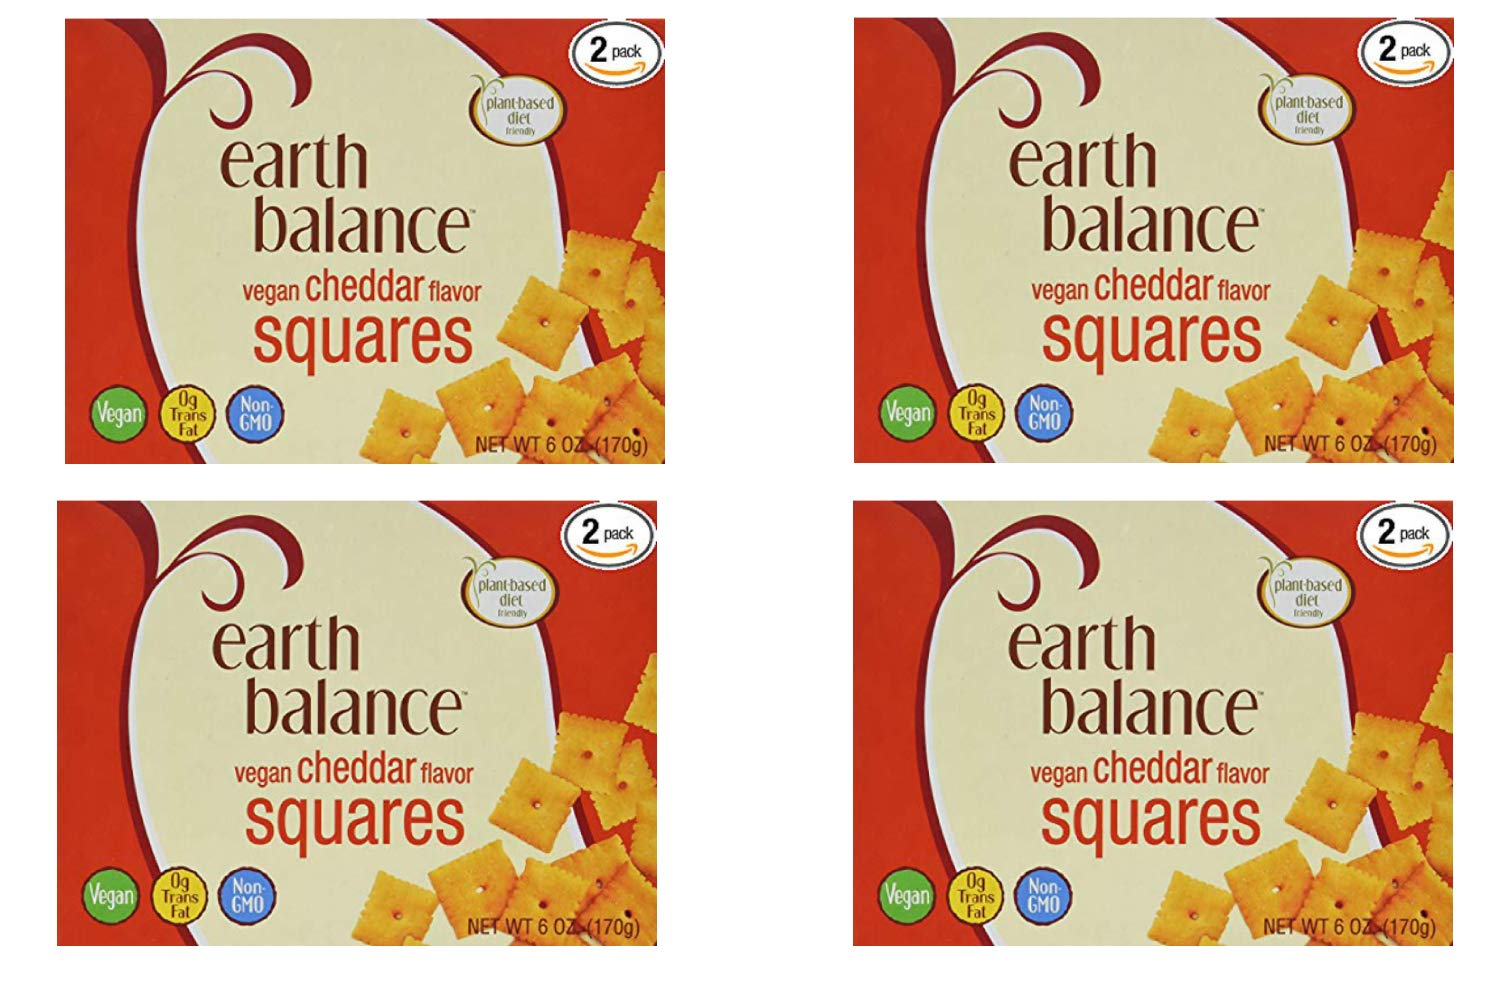 Earth Balance Vegan Cheddar Flavor Squares - 6 oz - 2 Count (4 Pack) by Earth Balance (Image #1)